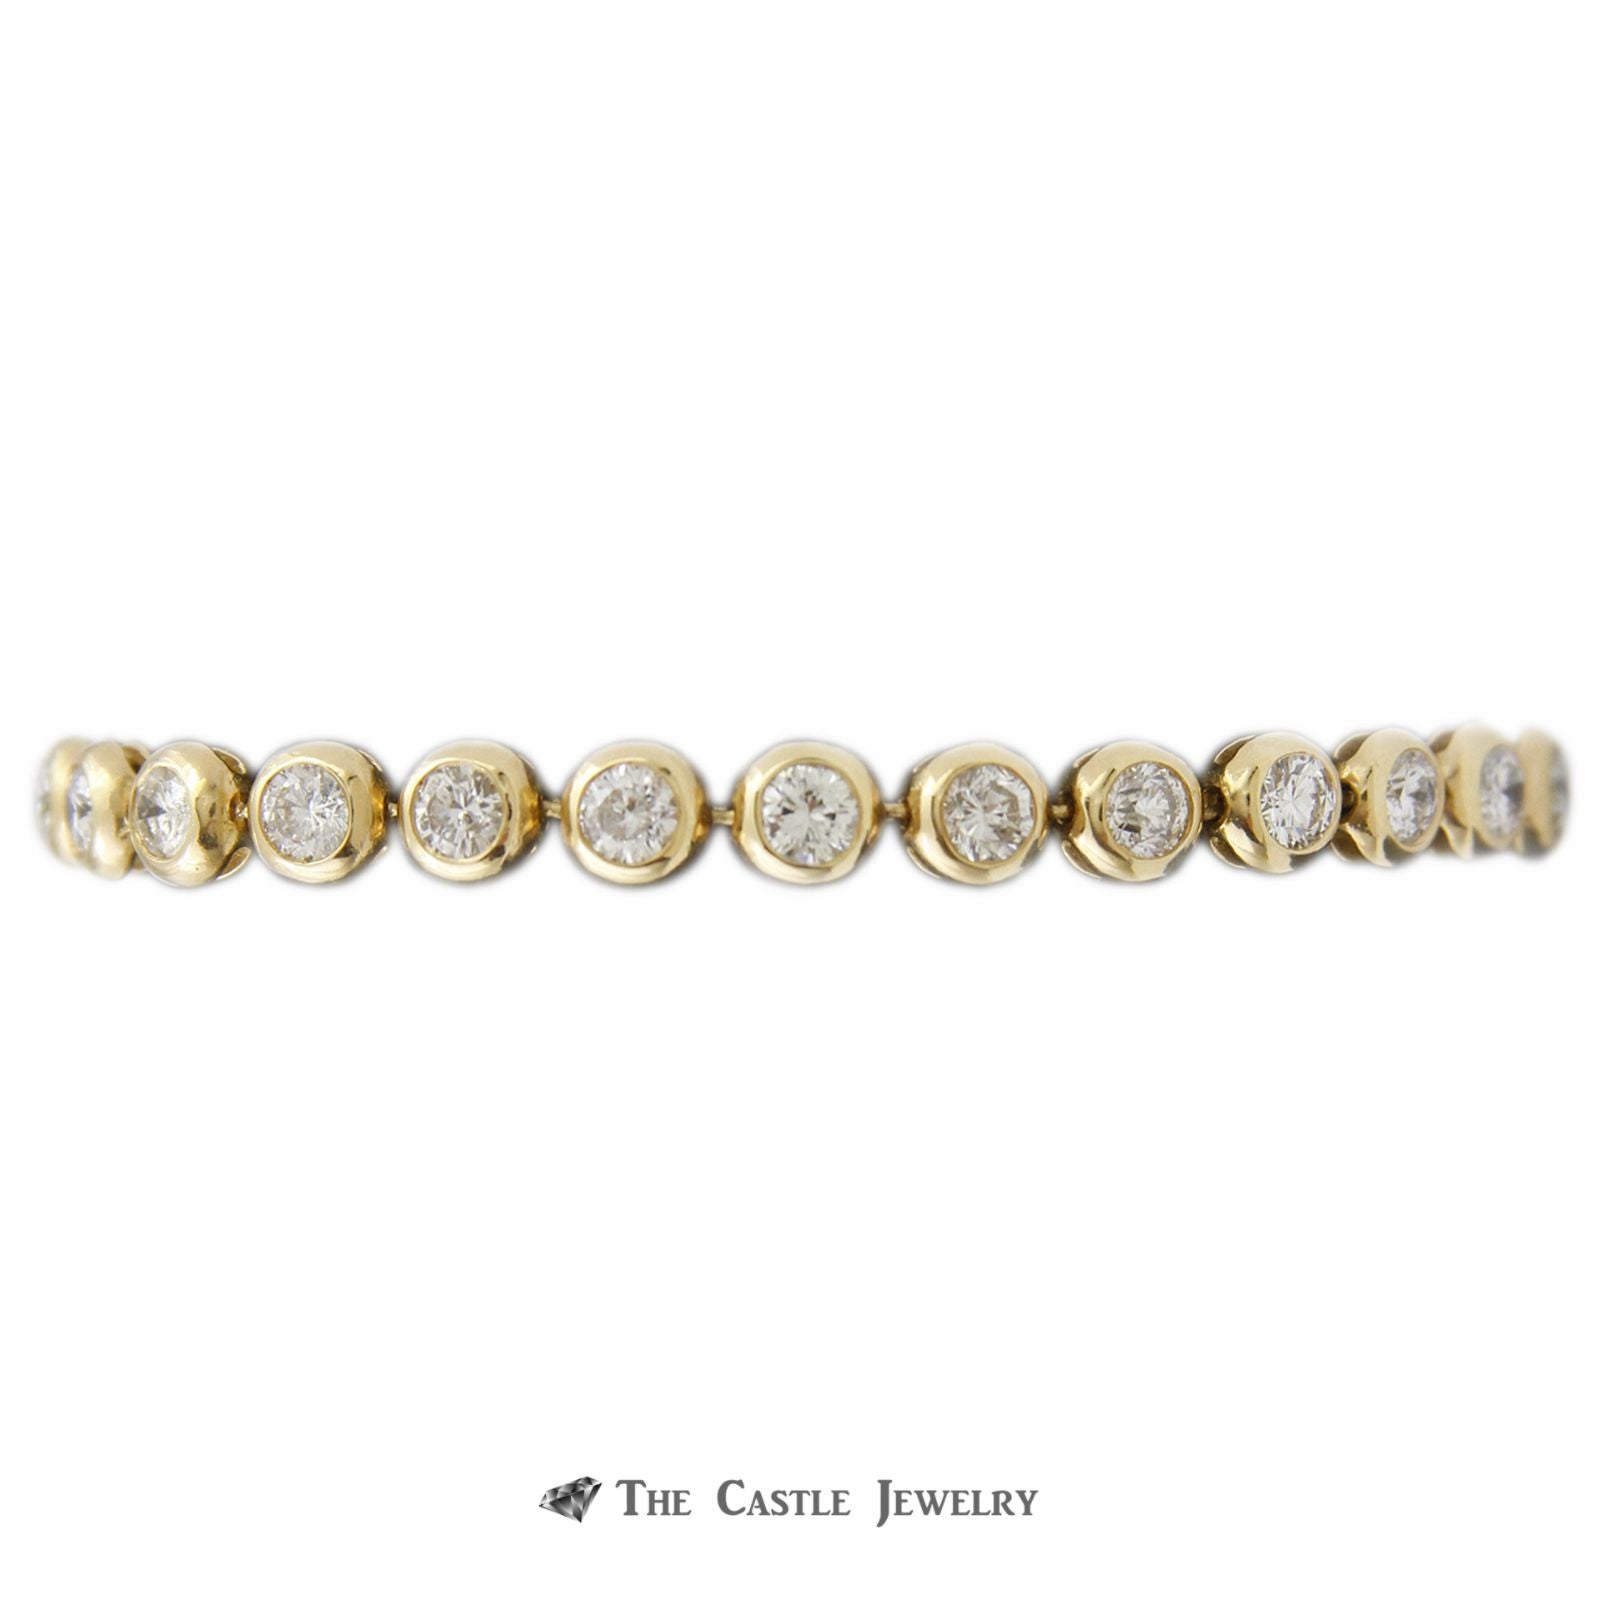 Bezel Set 7cttw Round Diamond Tennis Bracelet 7.5 Inches in 14K Yellow Gold